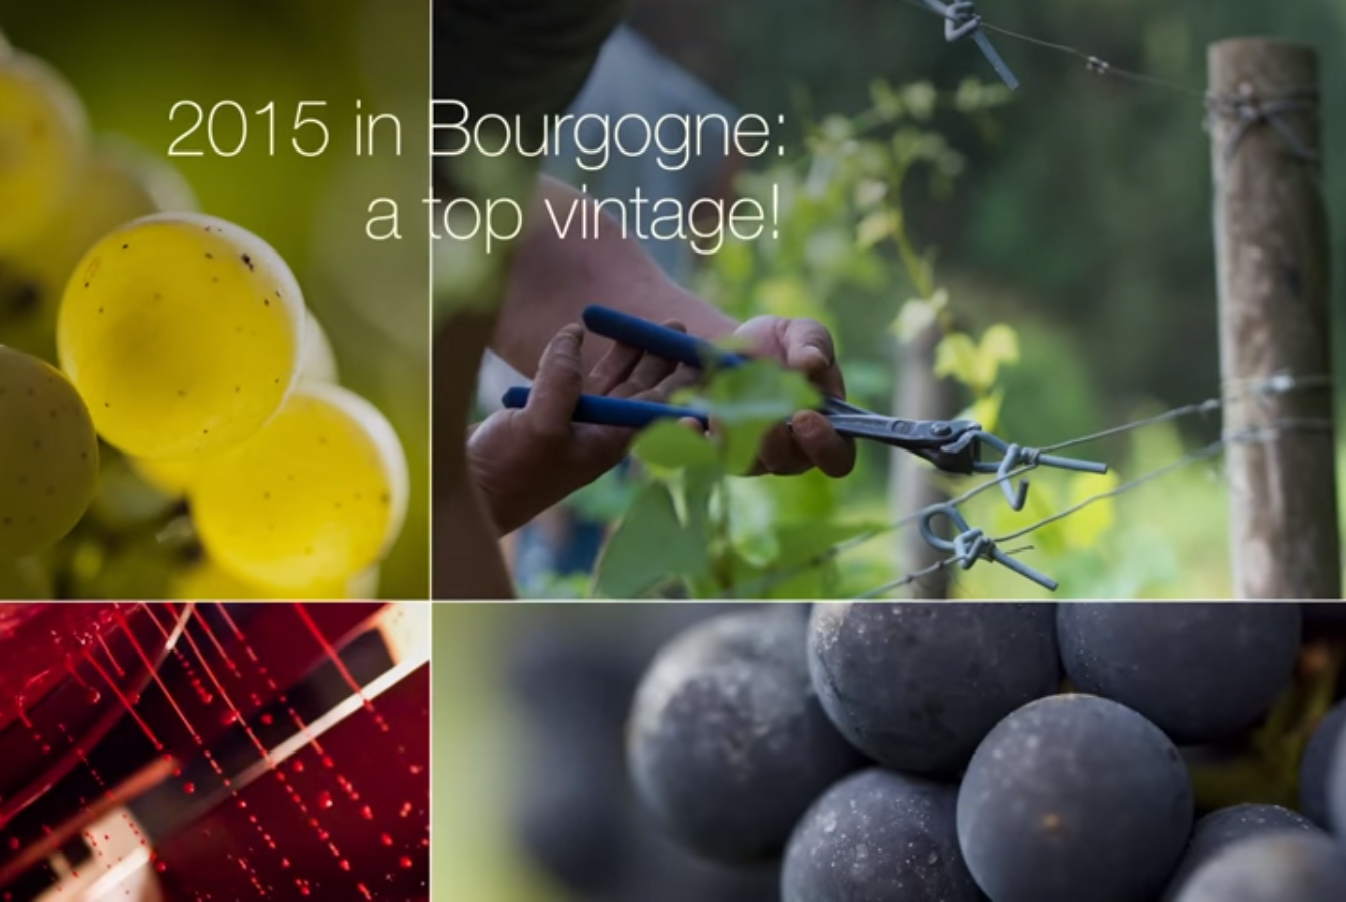 2015 in Bourgogne : the top vintage